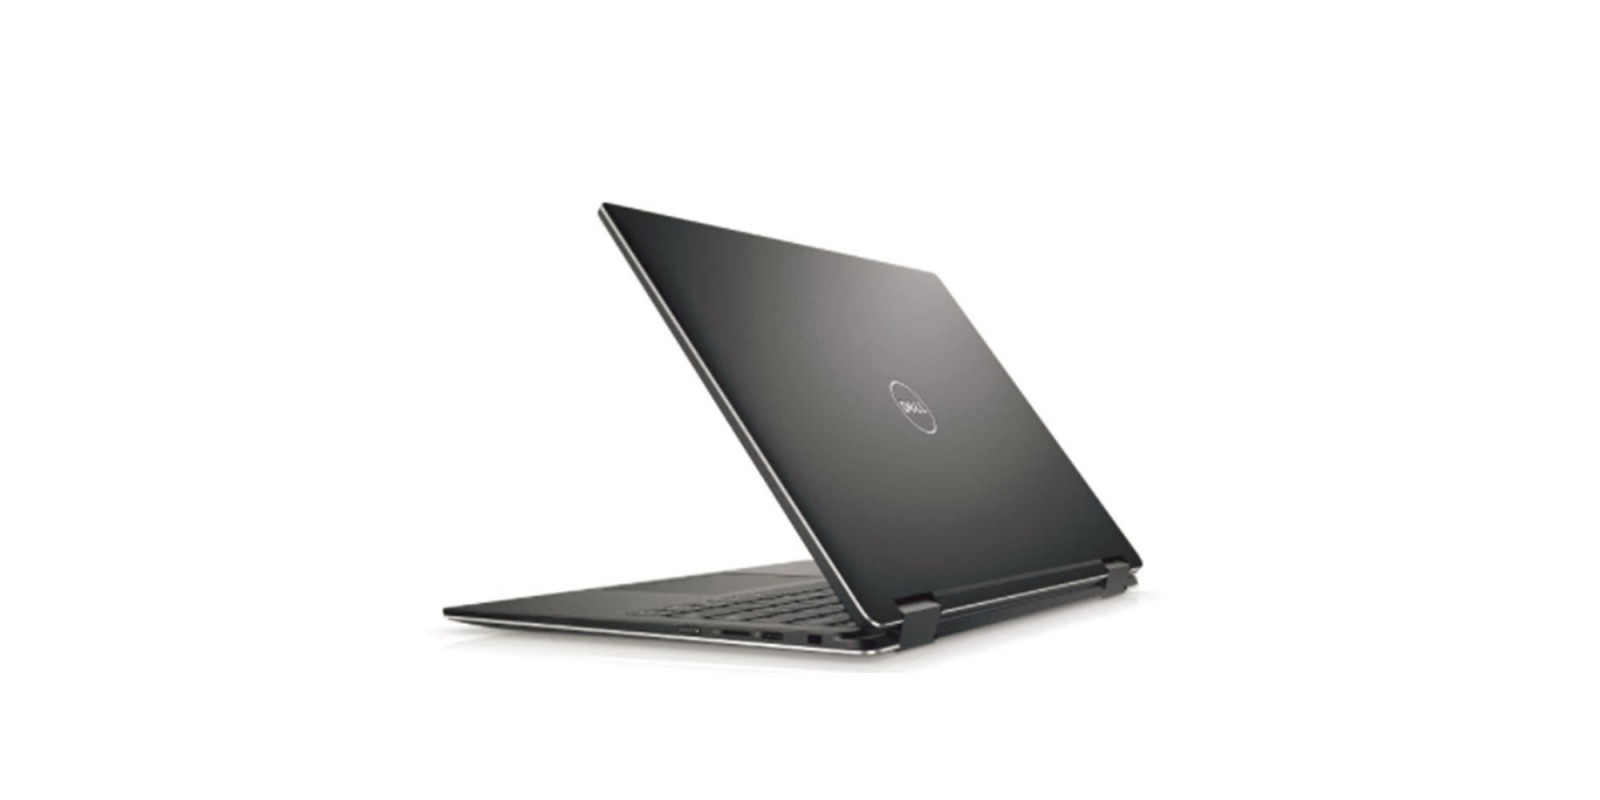 Dell XPS 13 9365 13.3 2 in 1 Laptop FHD Touchscreen 7th Gen Back Left